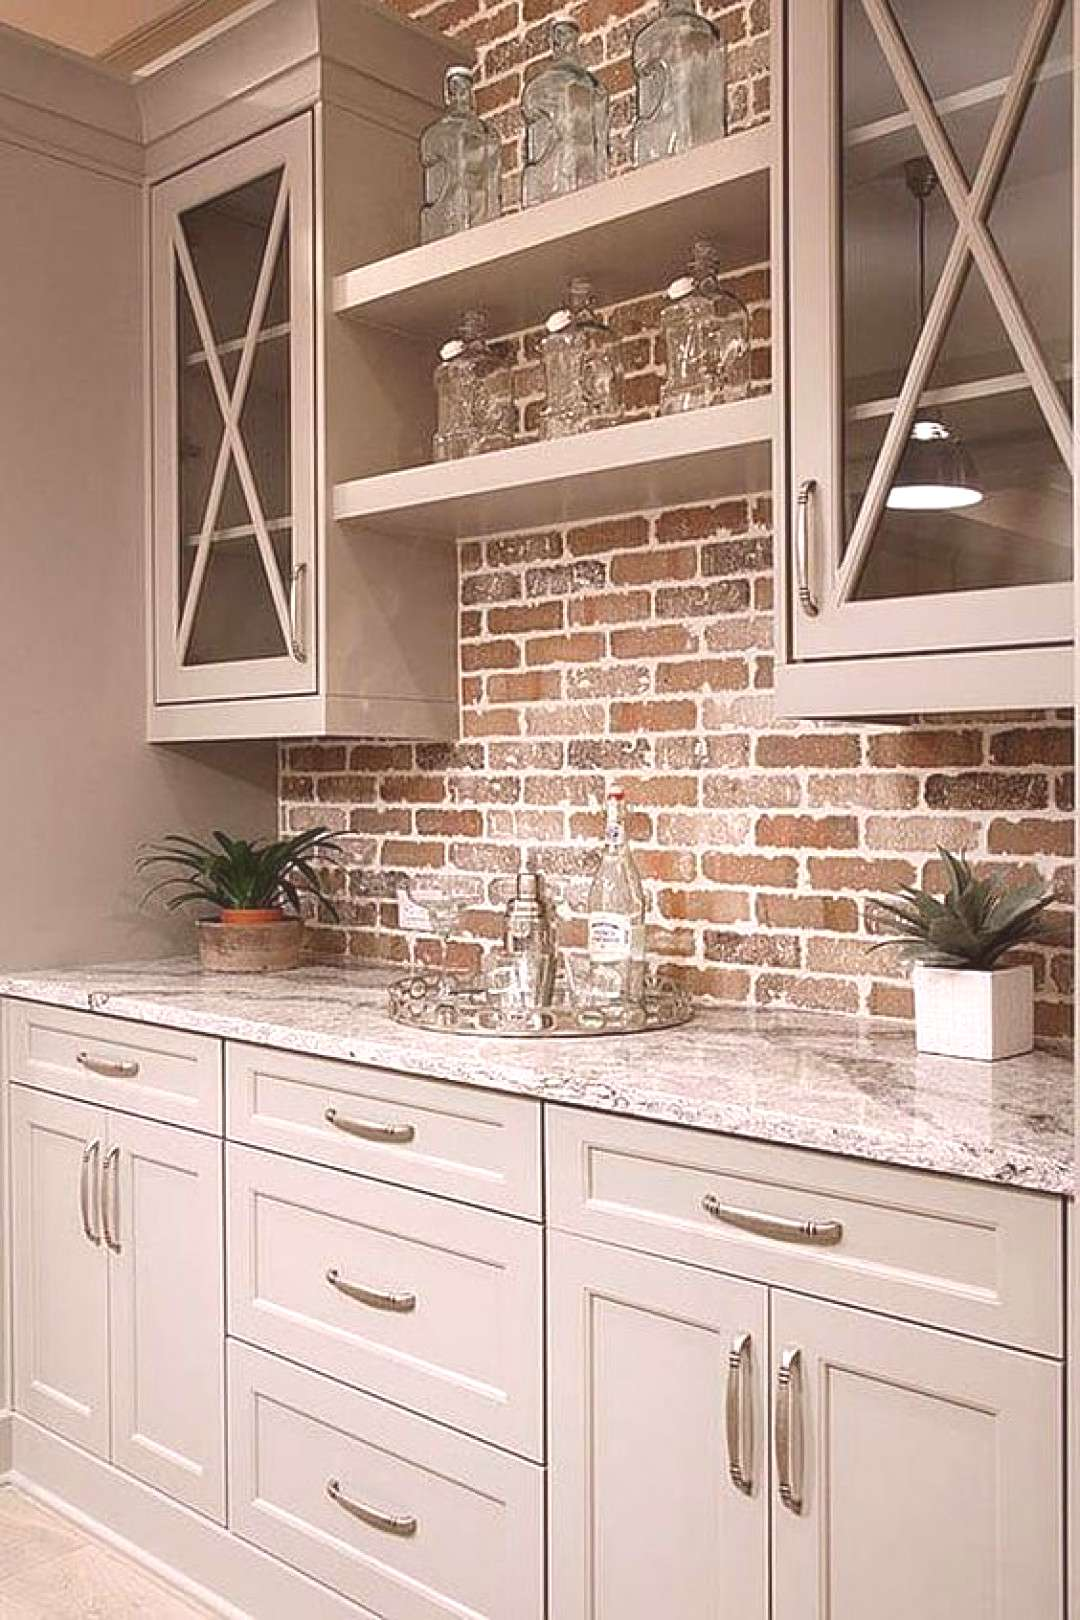 52 27 cabinets for the rustic 27 cabinets for the rustic kitchen of your dreams - decoration#cabin